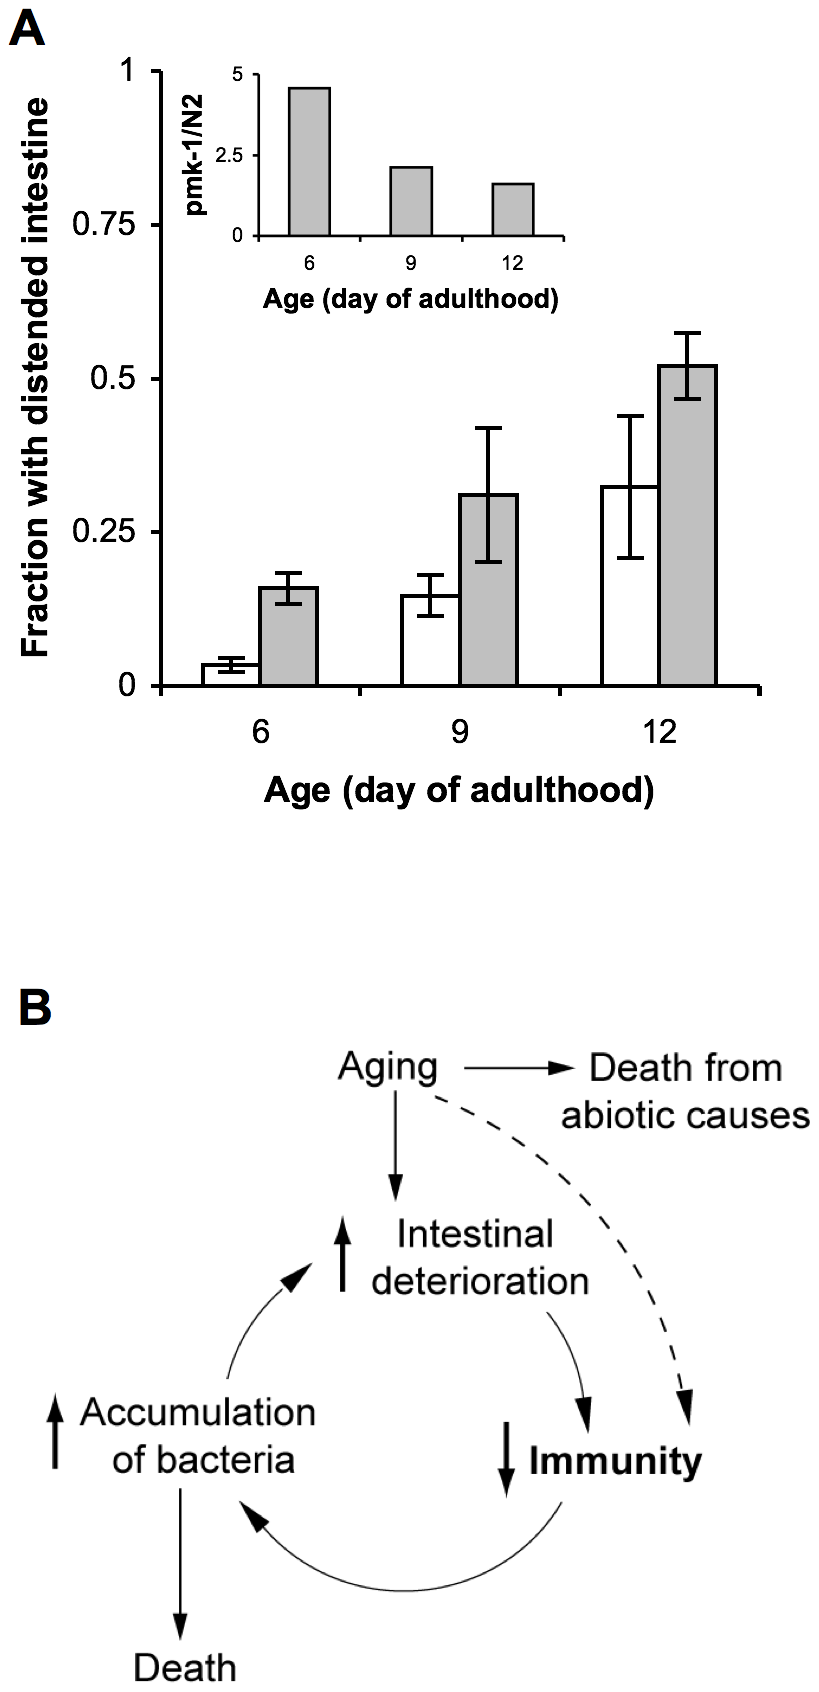 A cycle of intestinal tissue aging, immunosenescence, and progressive intestinal proliferation of bacteria towards the end of life in <i>C. elegans</i>.